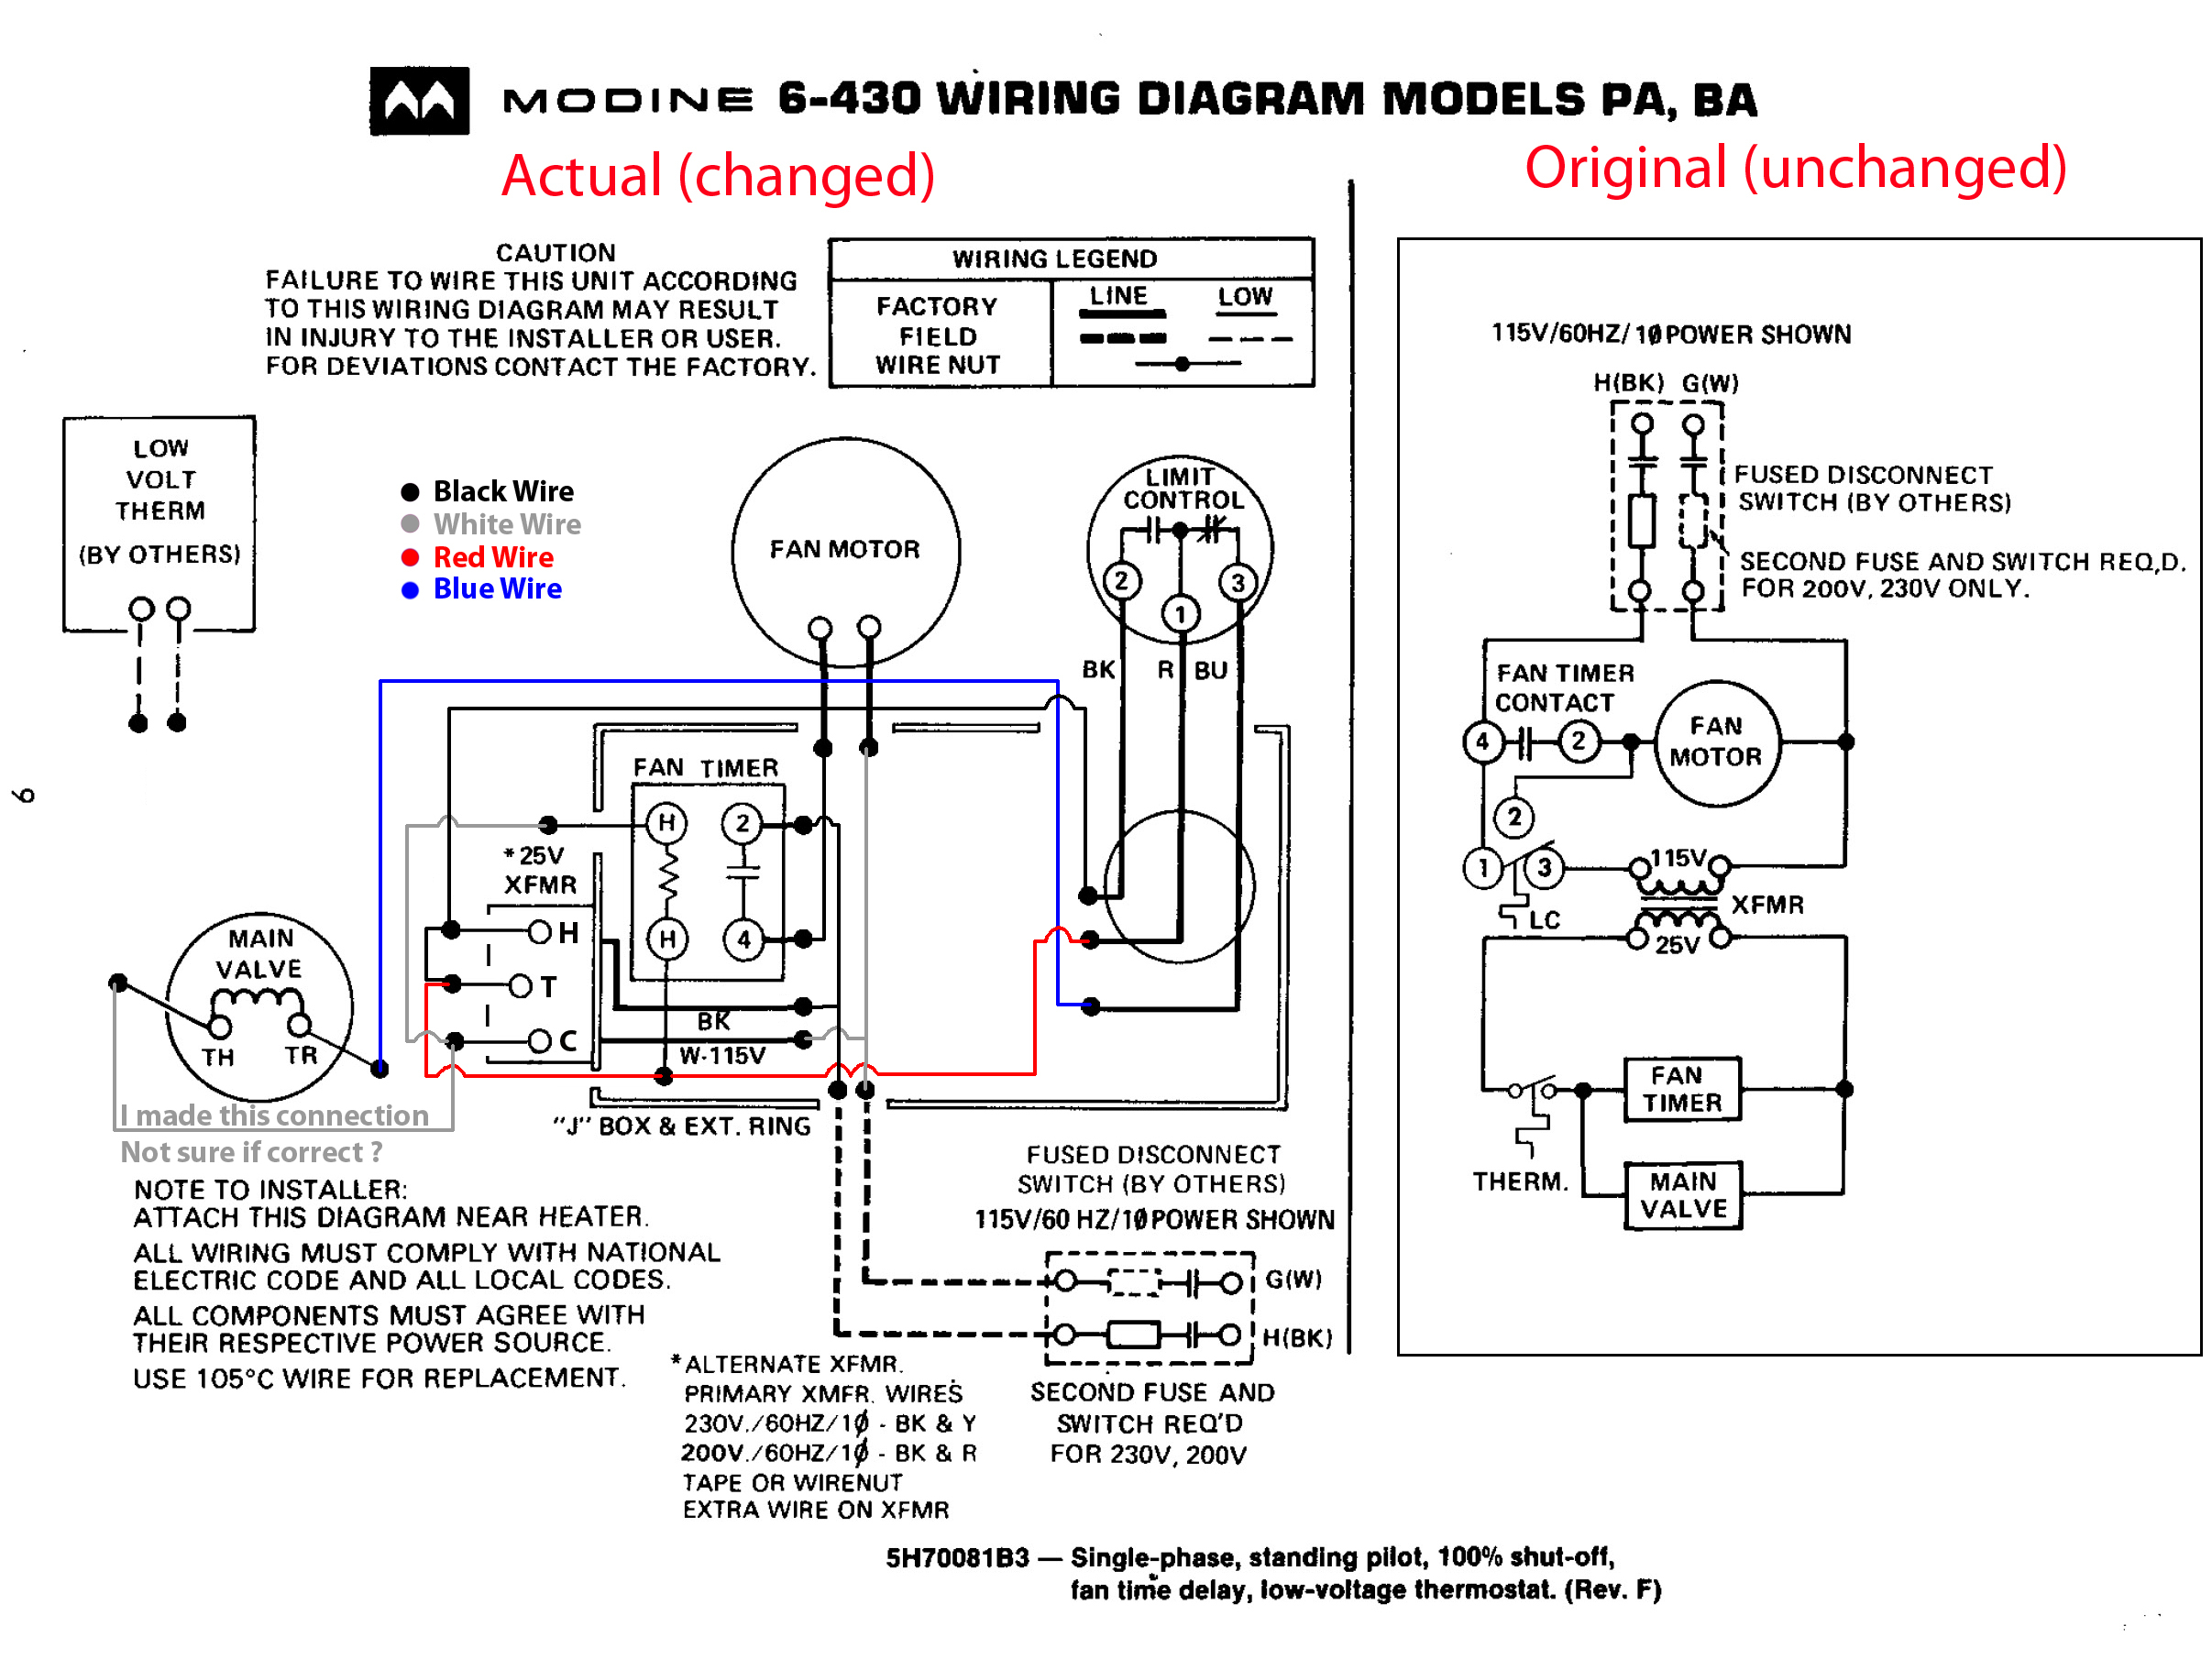 ☑ Dayton Hanging Furnace Wiring Diagram HD Quality ☑ basic-electrical- diagram.twirlinglucca.itDiagram Database - Twirlinglucca.it